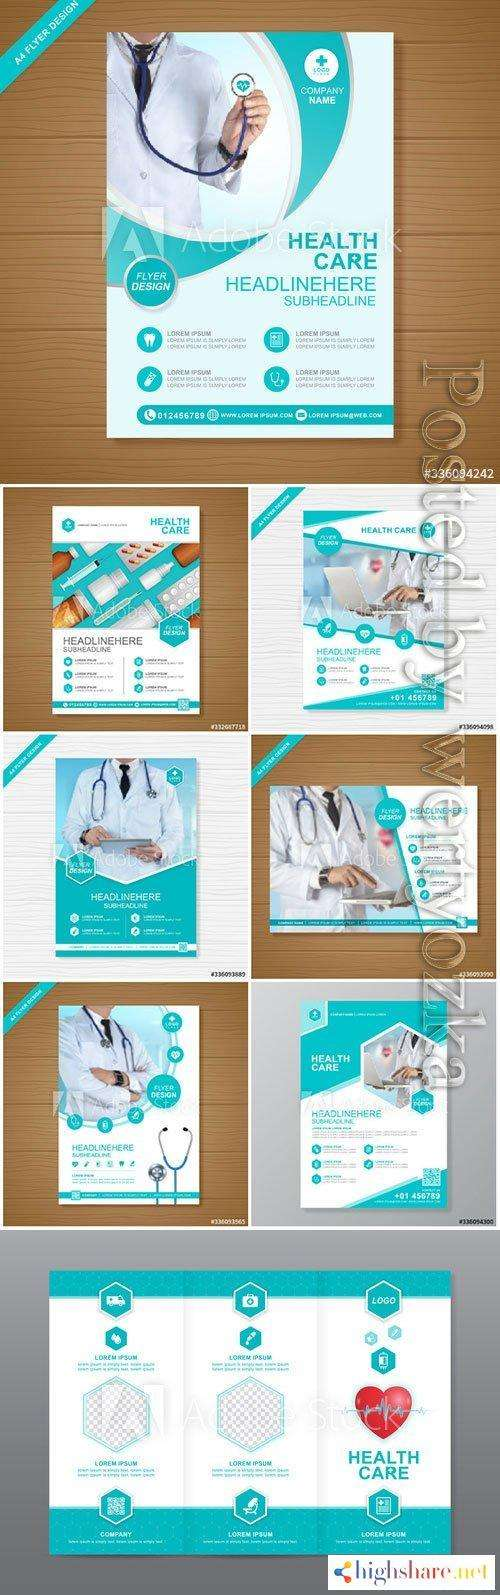 health care cover a4 template design for a report and medical brochure 5f41d79f2655f - Health care cover a4 template design for a report and medical brochure